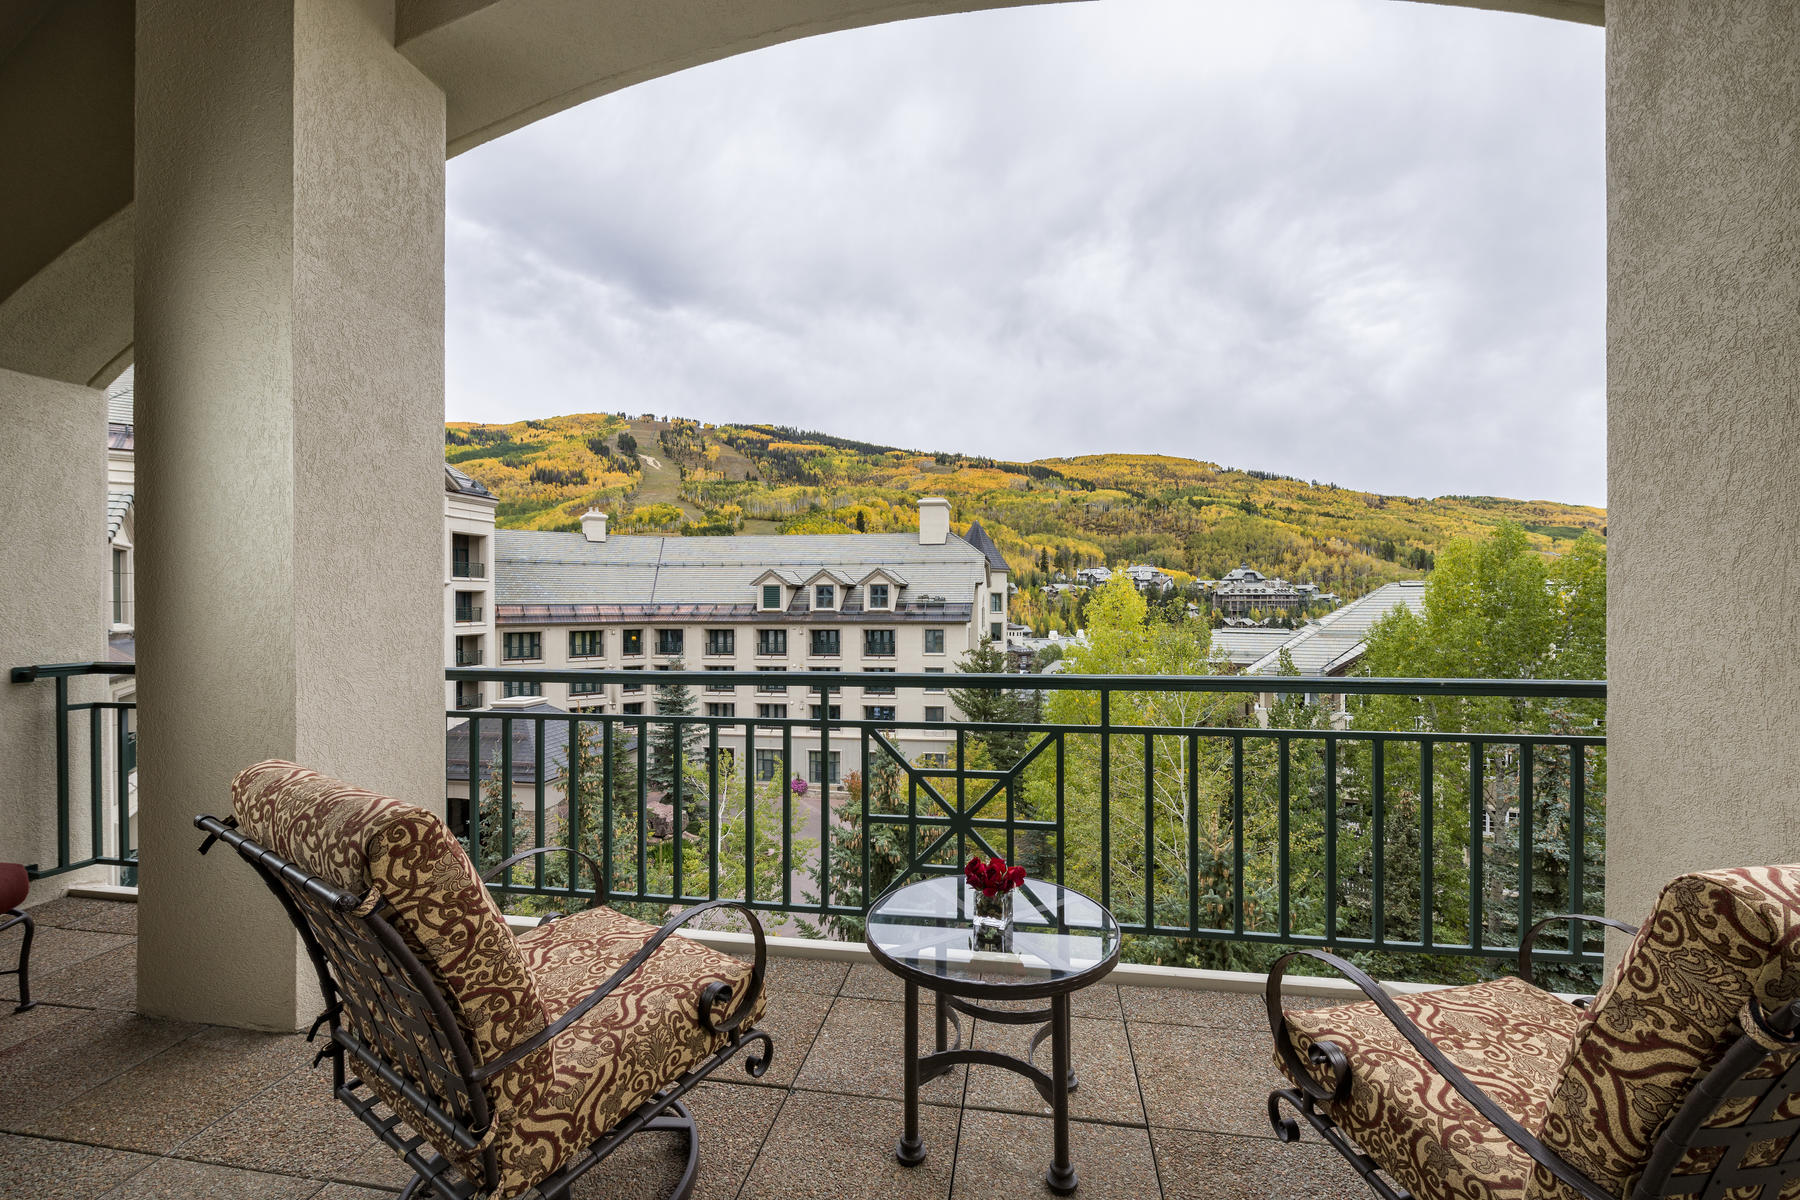 Additional photo for property listing at Park Hyatt Penthouse R10 100 E Thomas Place #R10 Beaver Creek, Colorado 81620 United States